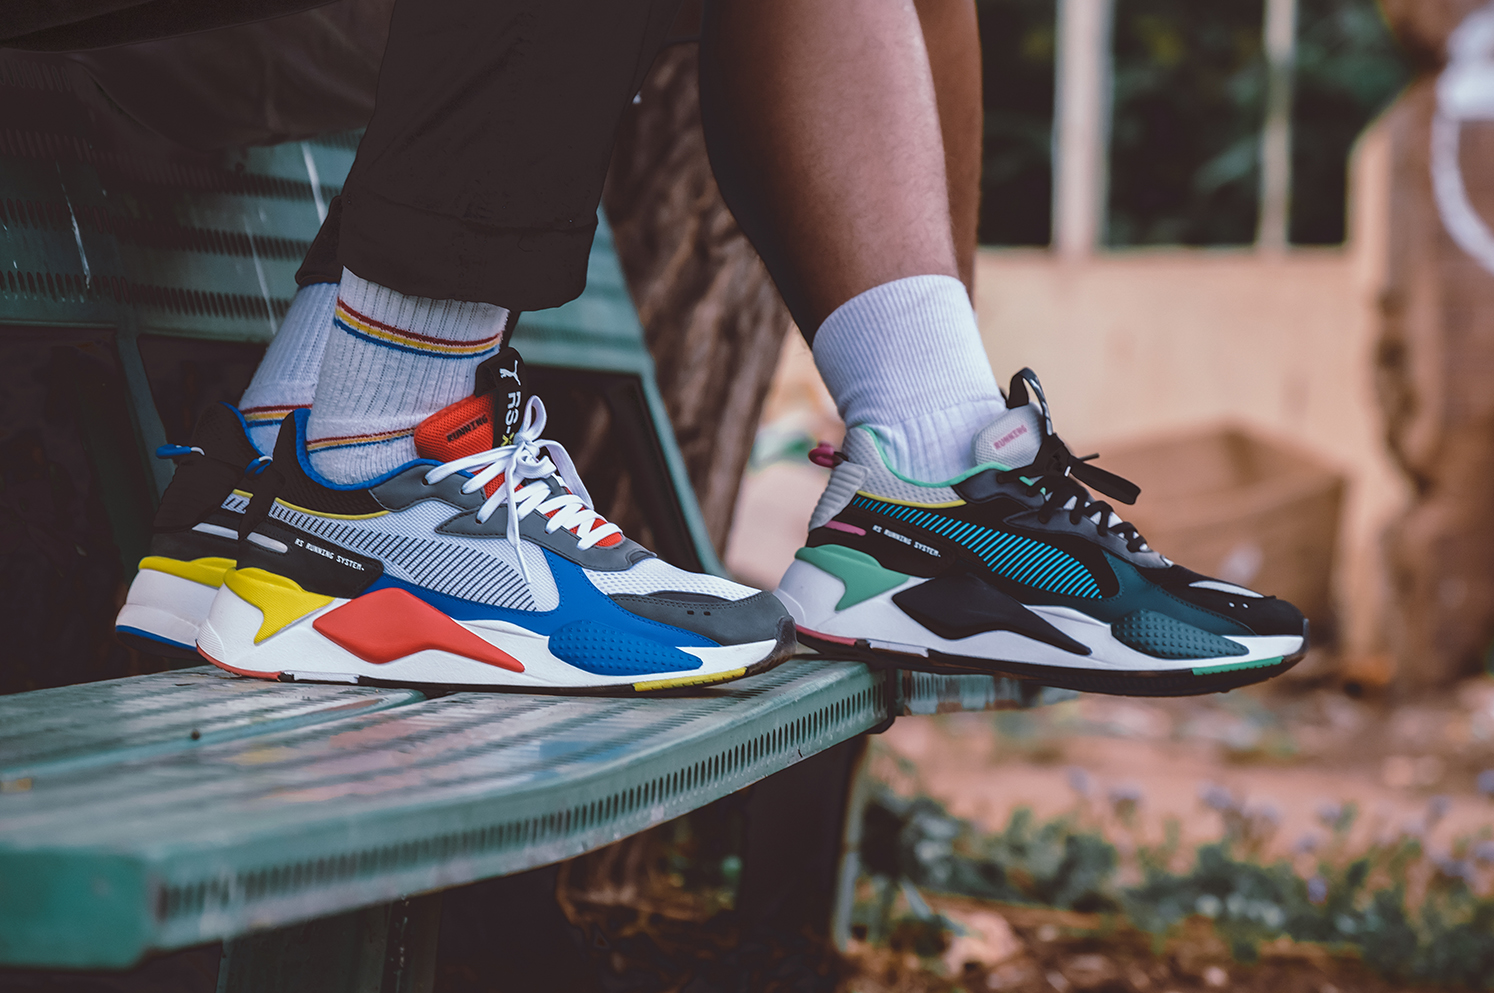 88c909938ad4 Offered in two colourways  PUMA Black Blue Atoll and PUMA White PUMA  Royal High-Risk Red